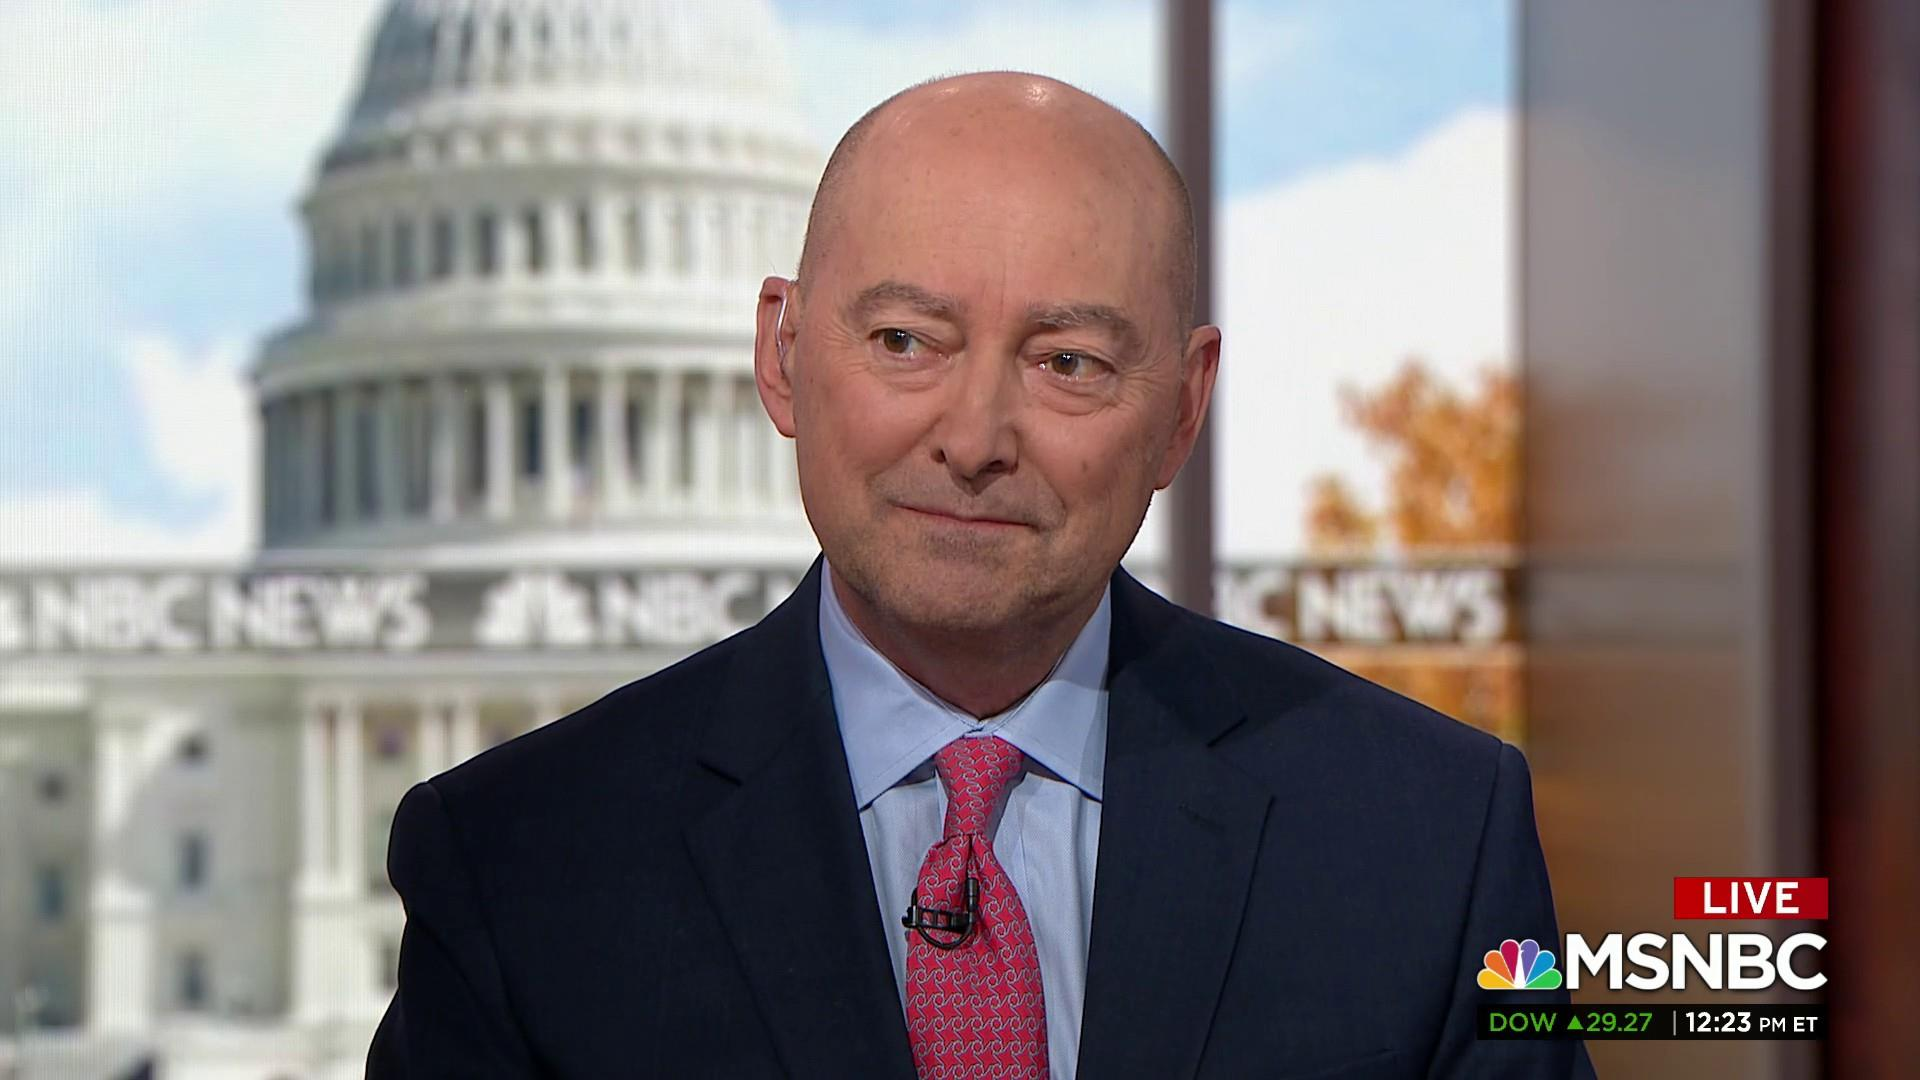 Adm. Stavridis: I think at this point that ship has sailed in terms of protecting the Kurds. They are highly at risk, as we see. ISIS will resurge.